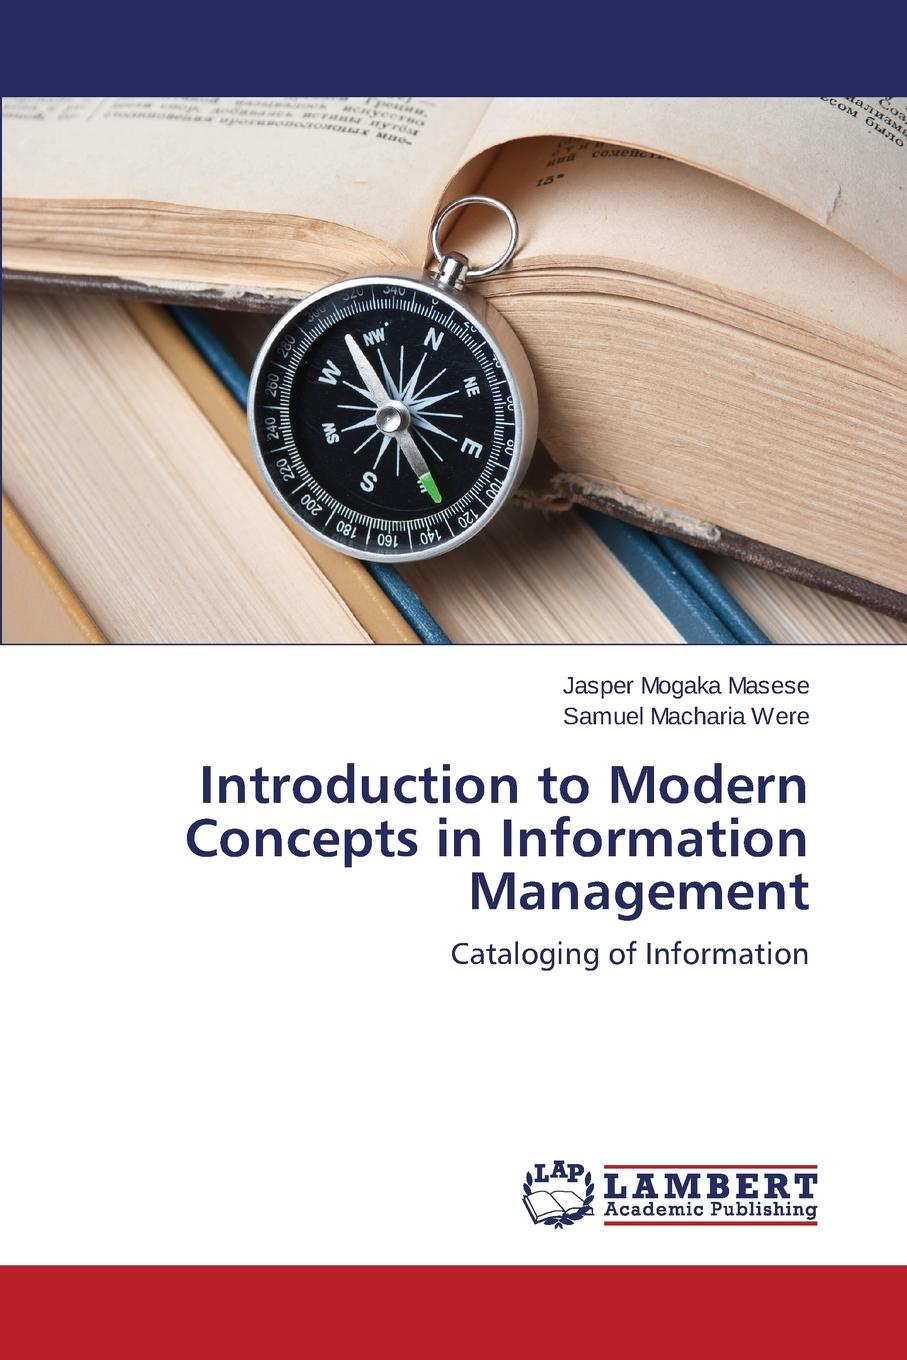 Masese Jasper Mogaka, Macharia Were Samuel Introduction to Modern Concepts in Information Management patrick allo putting information first luciano floridi and the philosophy of information